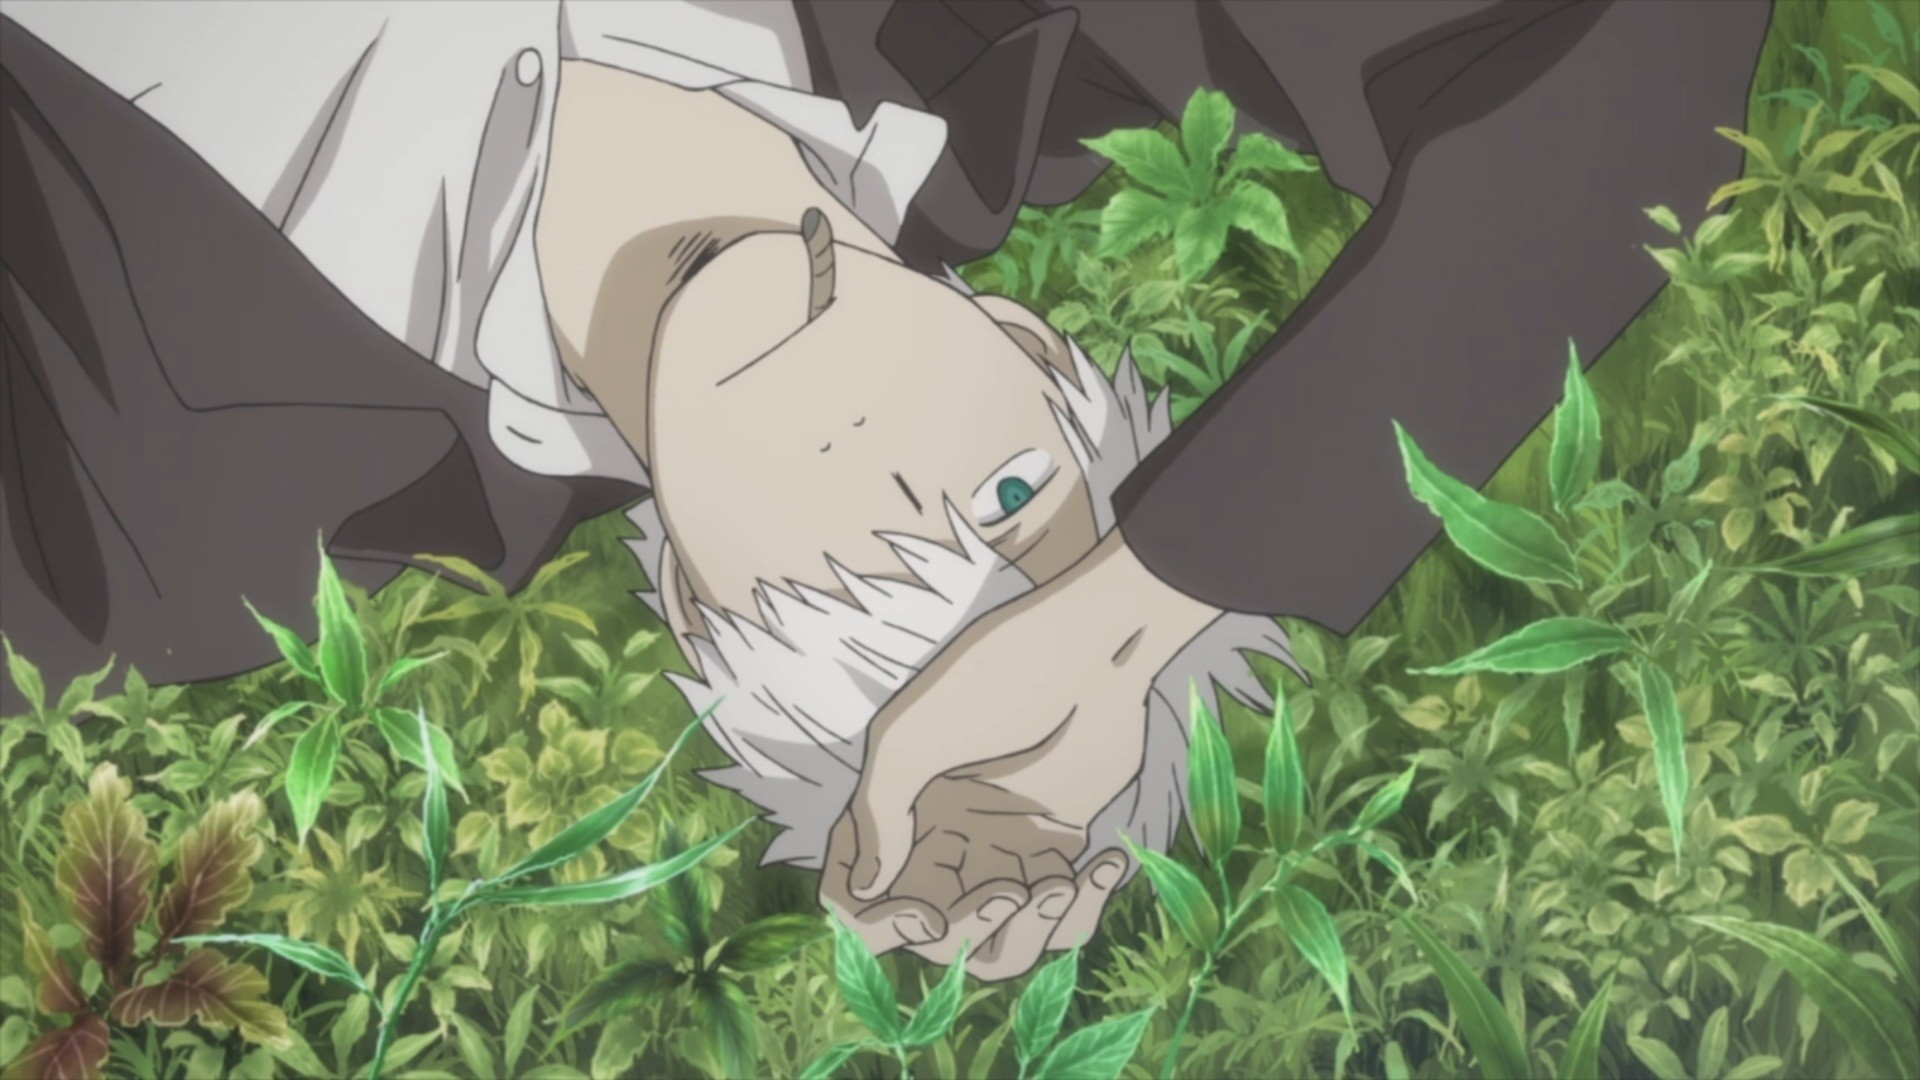 Res: 1920x1080, mushishi02jd3 Mushishi-Episode-10 mushishispecial